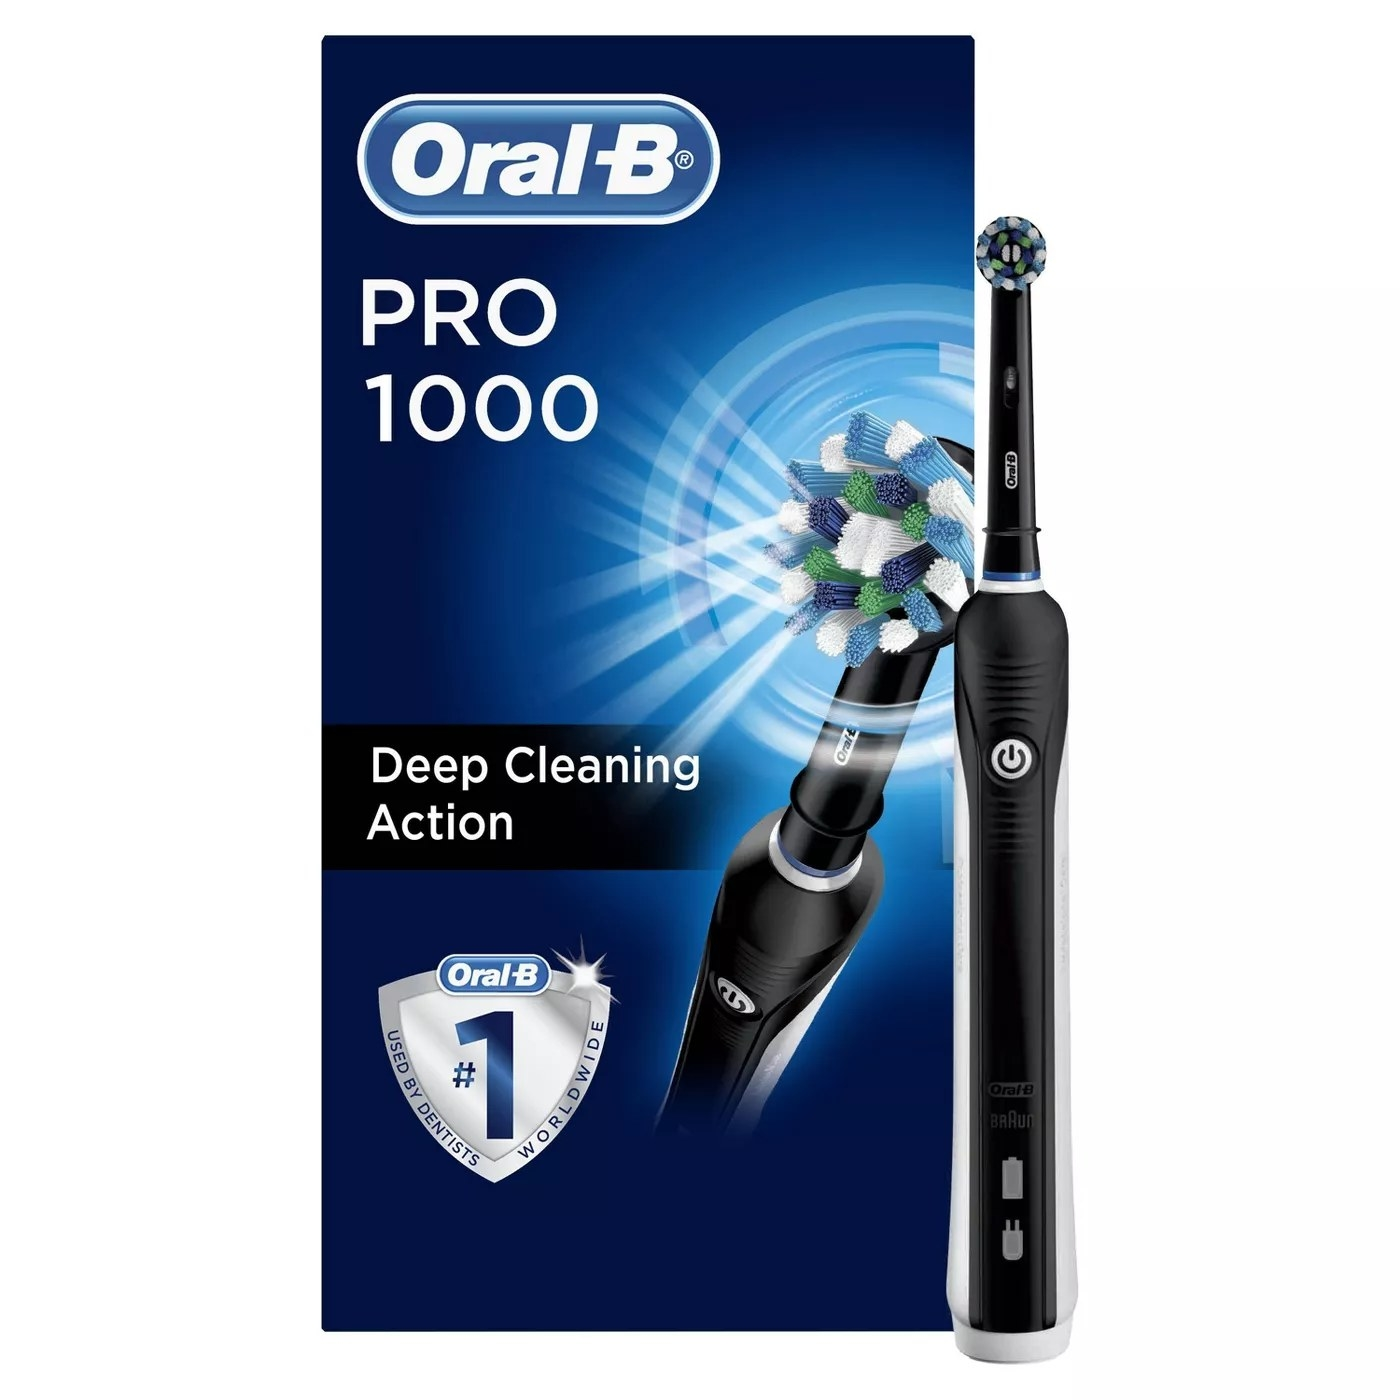 Oral-B Pro 1000 with deep cleaning action